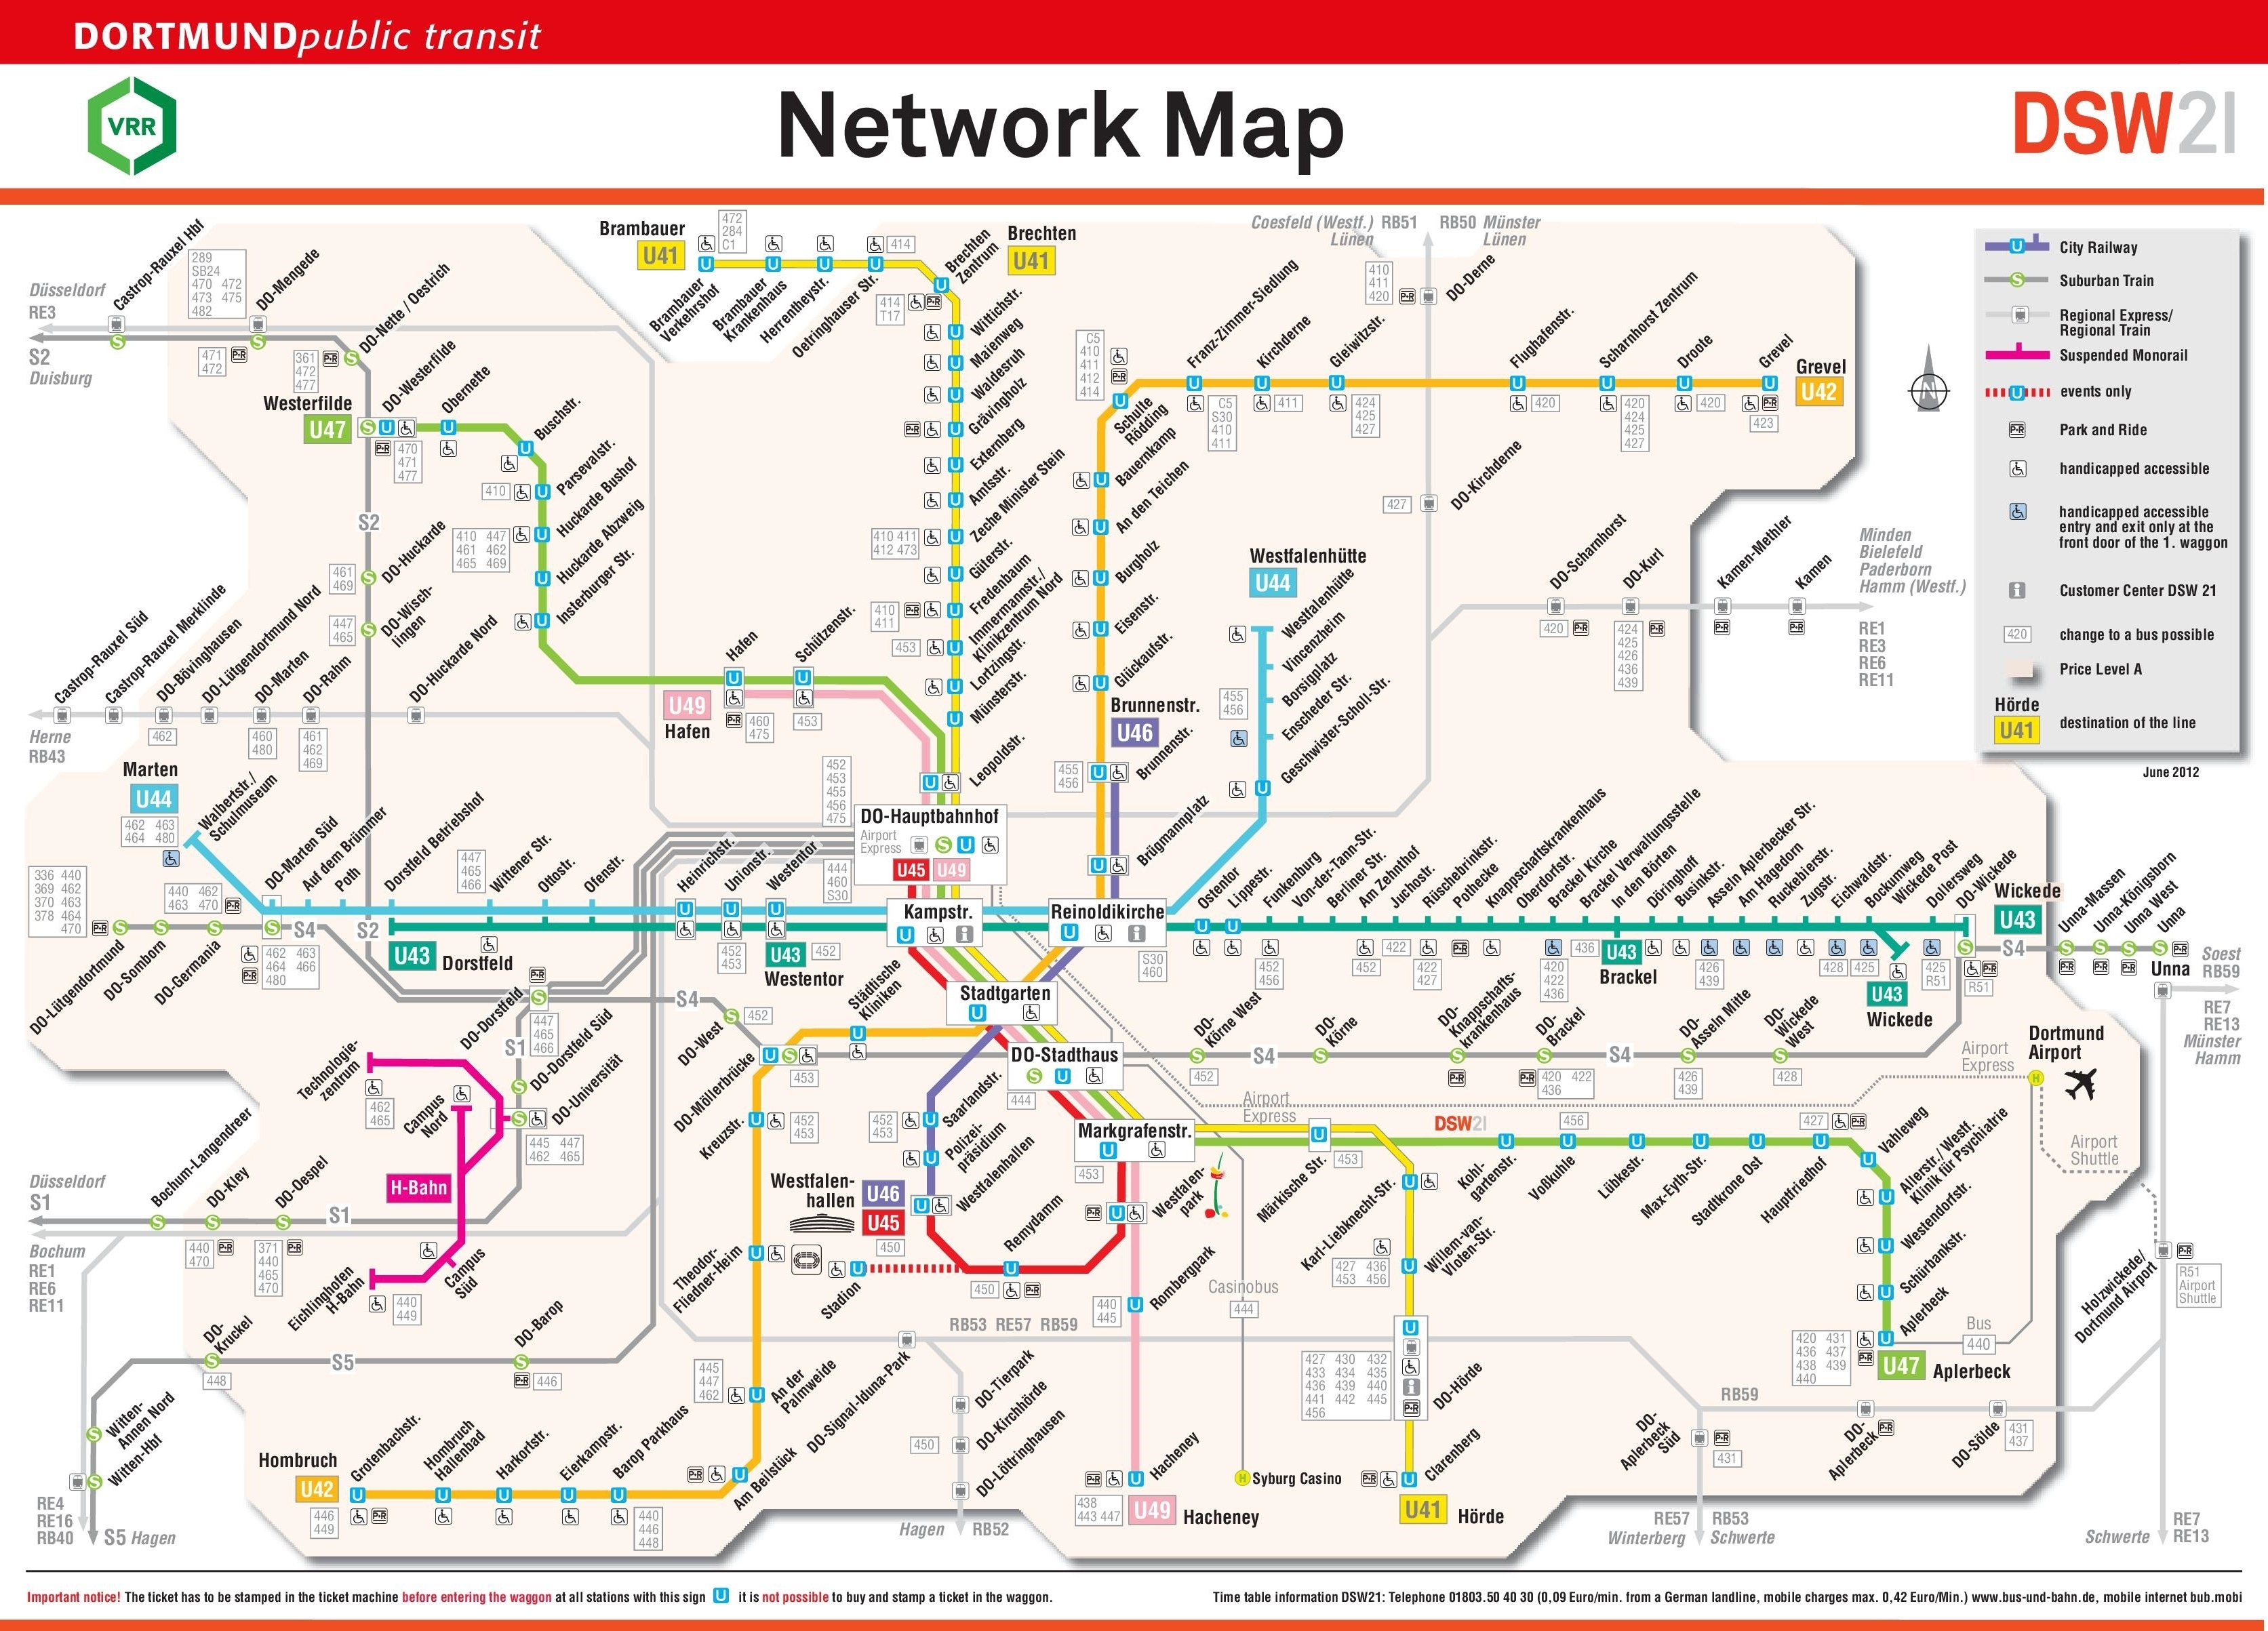 Dortmund Rail Map with regard to Where Is Dortmund Germany On The Map